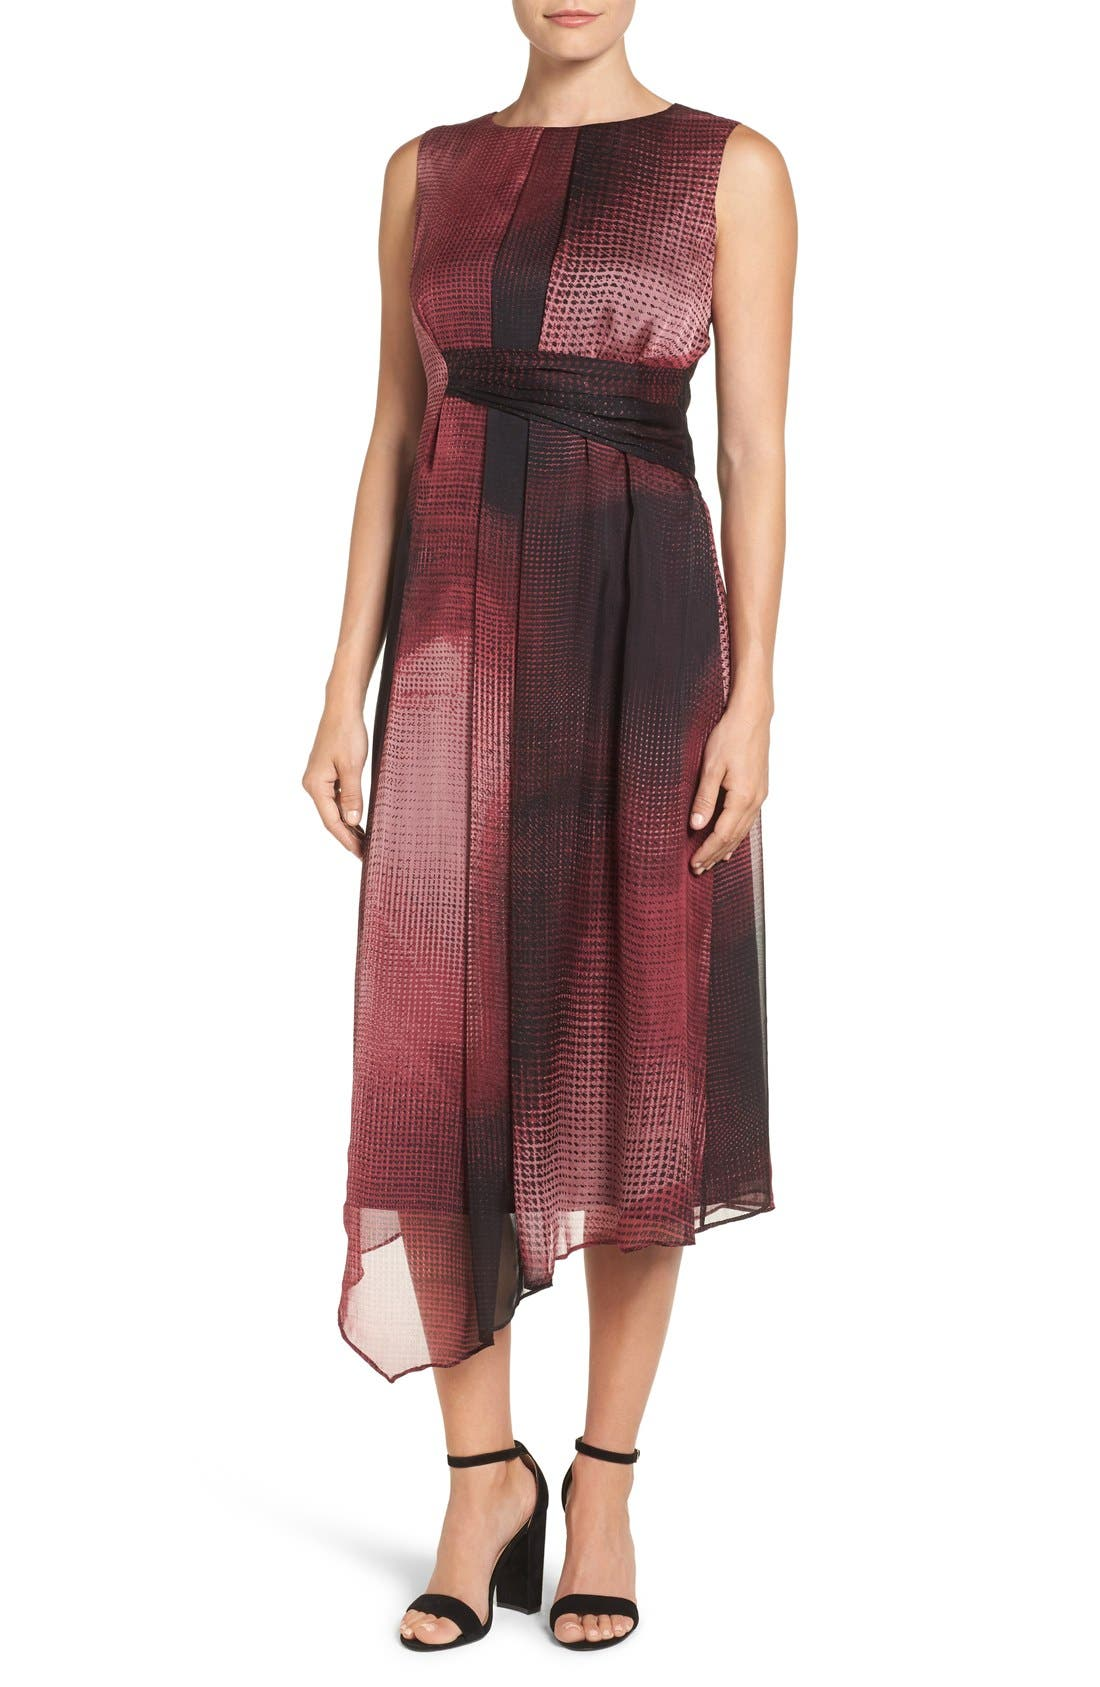 Alternate Image 1 Selected - NIC+ZOE 'Digital Age' Print Silk Midi Dress